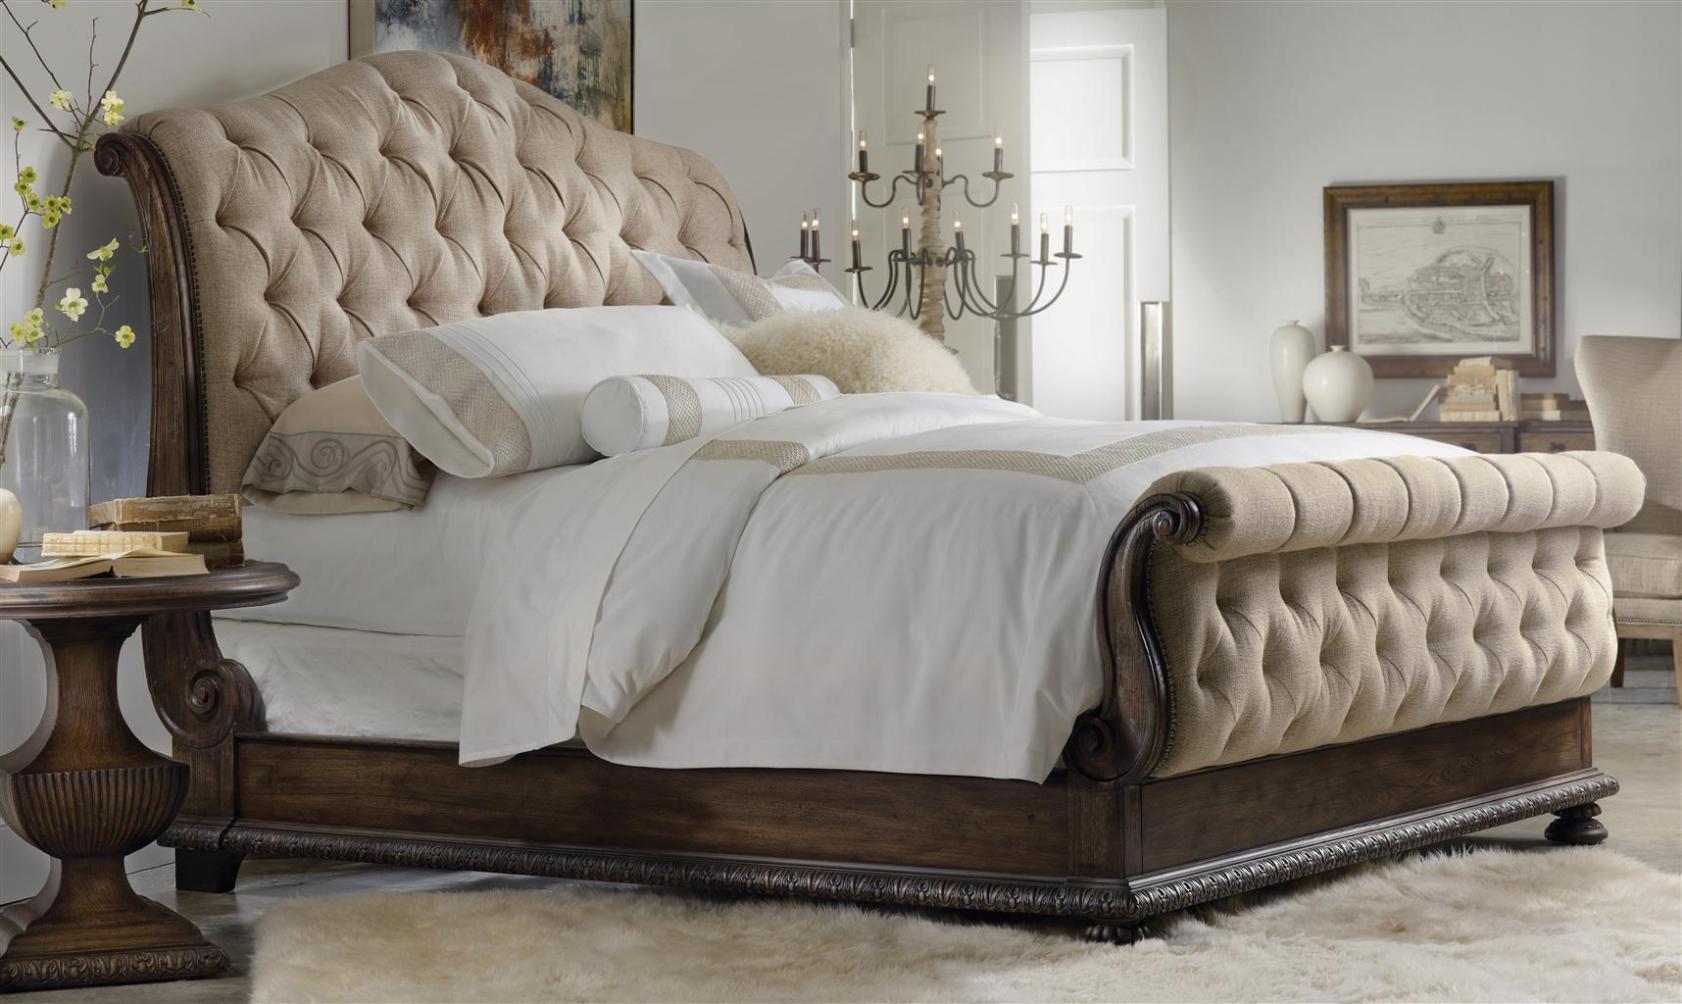 20 stunning king size headboard ideas for Mobilia king size bed